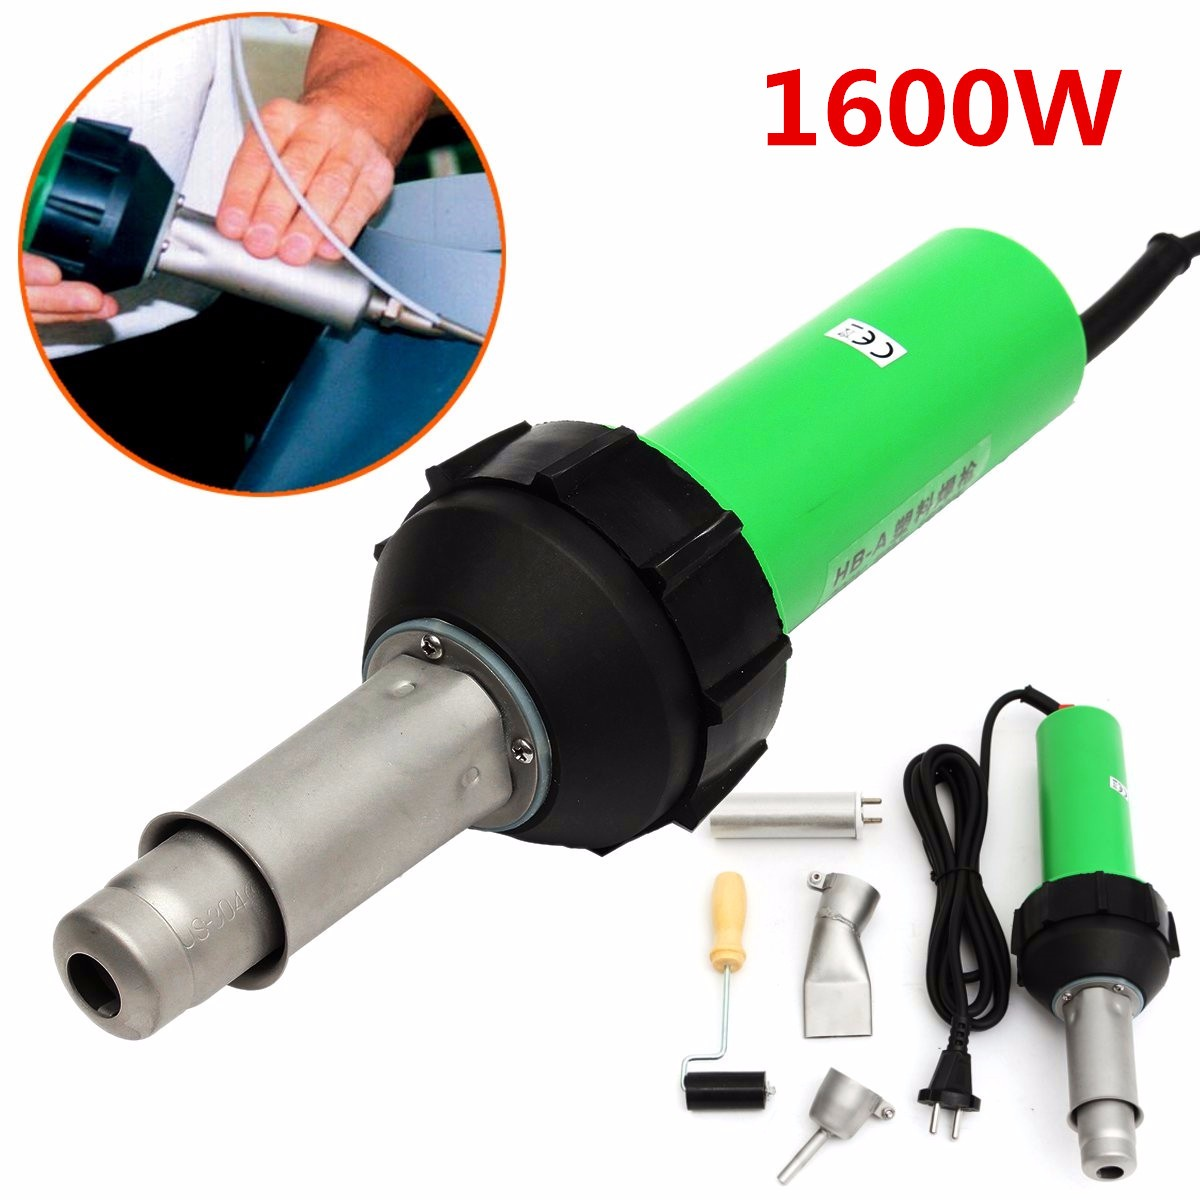 220V 1600W 50Hz Electronic Heat Hot Air Torch Plastic Welding Welder Torch + Nozzle + Pressure Roller 3000Pa hot air plastic welding nozzle advertise cloth material welding tools good quality